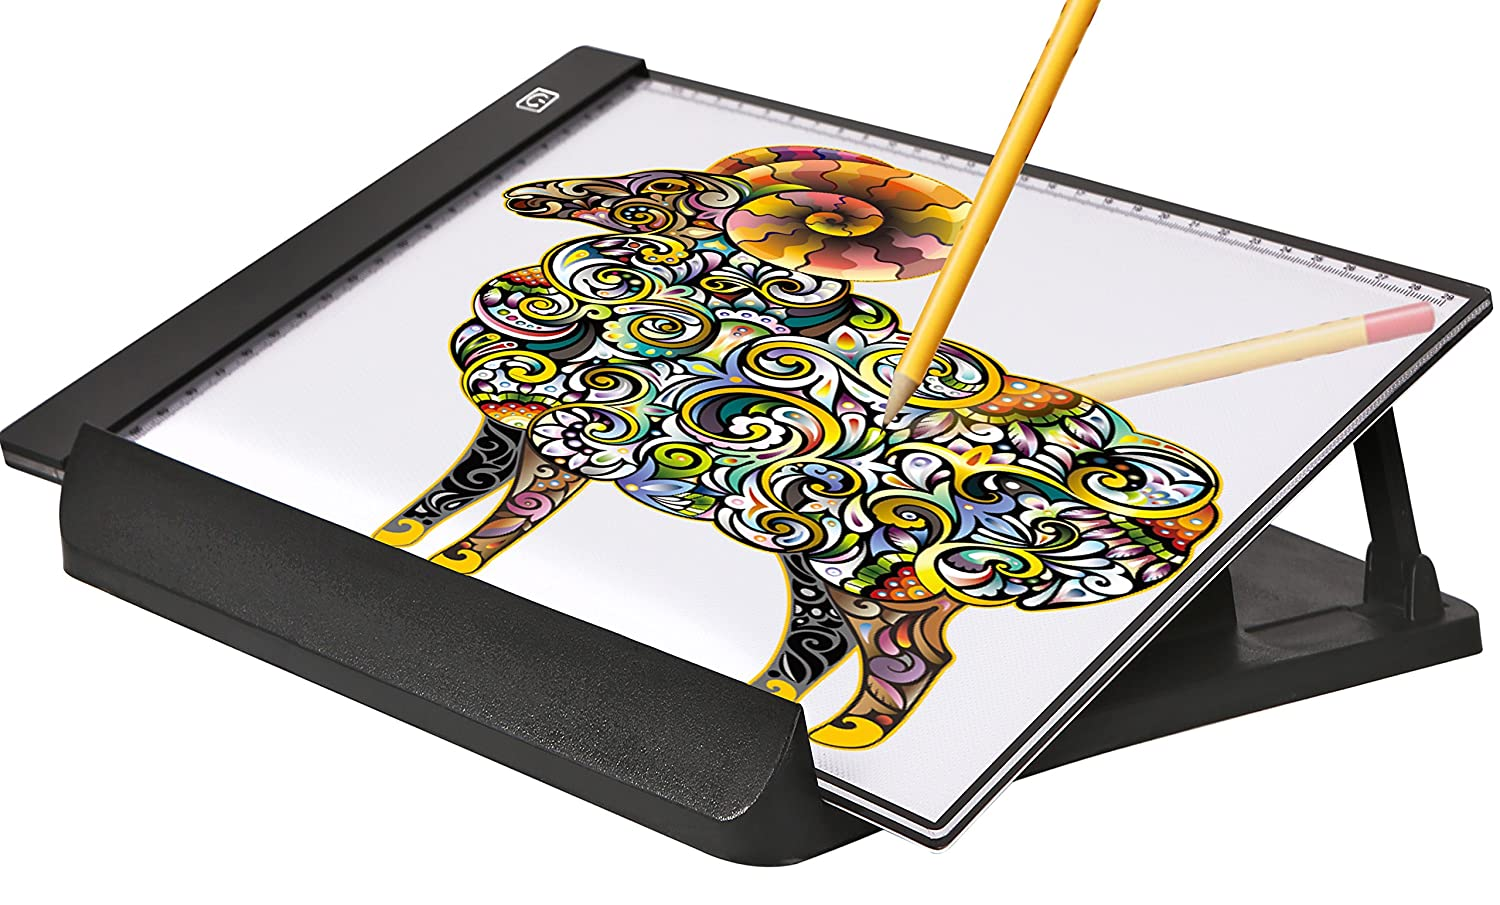 A4 Ultra-Thin Portable LED Light Box Tracer USB Power Cable Dimmable Brightness Artcraft Tracing Light Pad Light Box w a Stand&Sketches for Artists Drawing Sketching Animation Designing Stencilling Keeproduct LLC